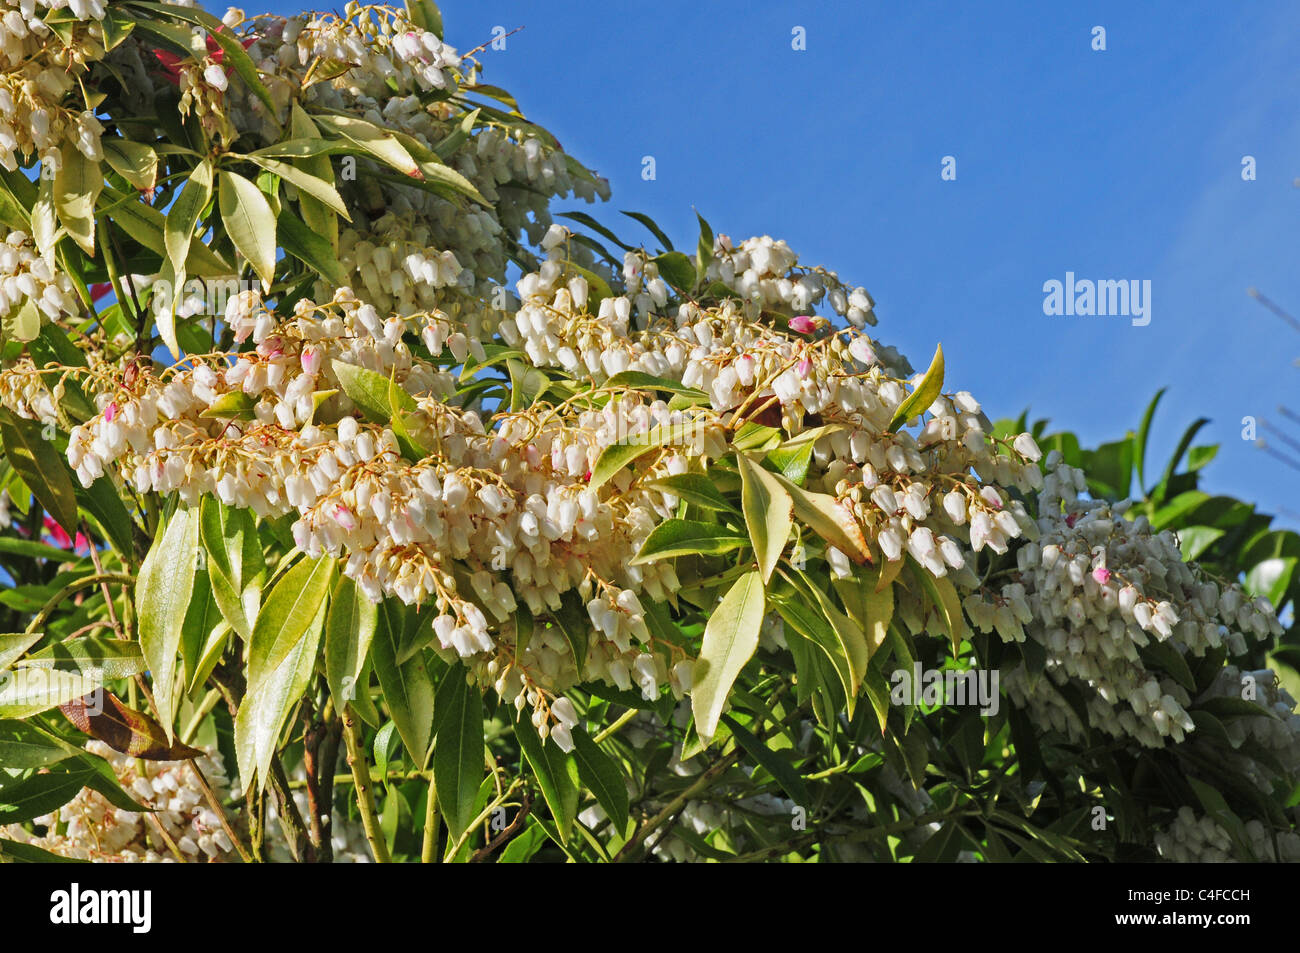 Flowers of Pieris formosa forrestii. Pale leaves showing lack of minerals. - Stock Image